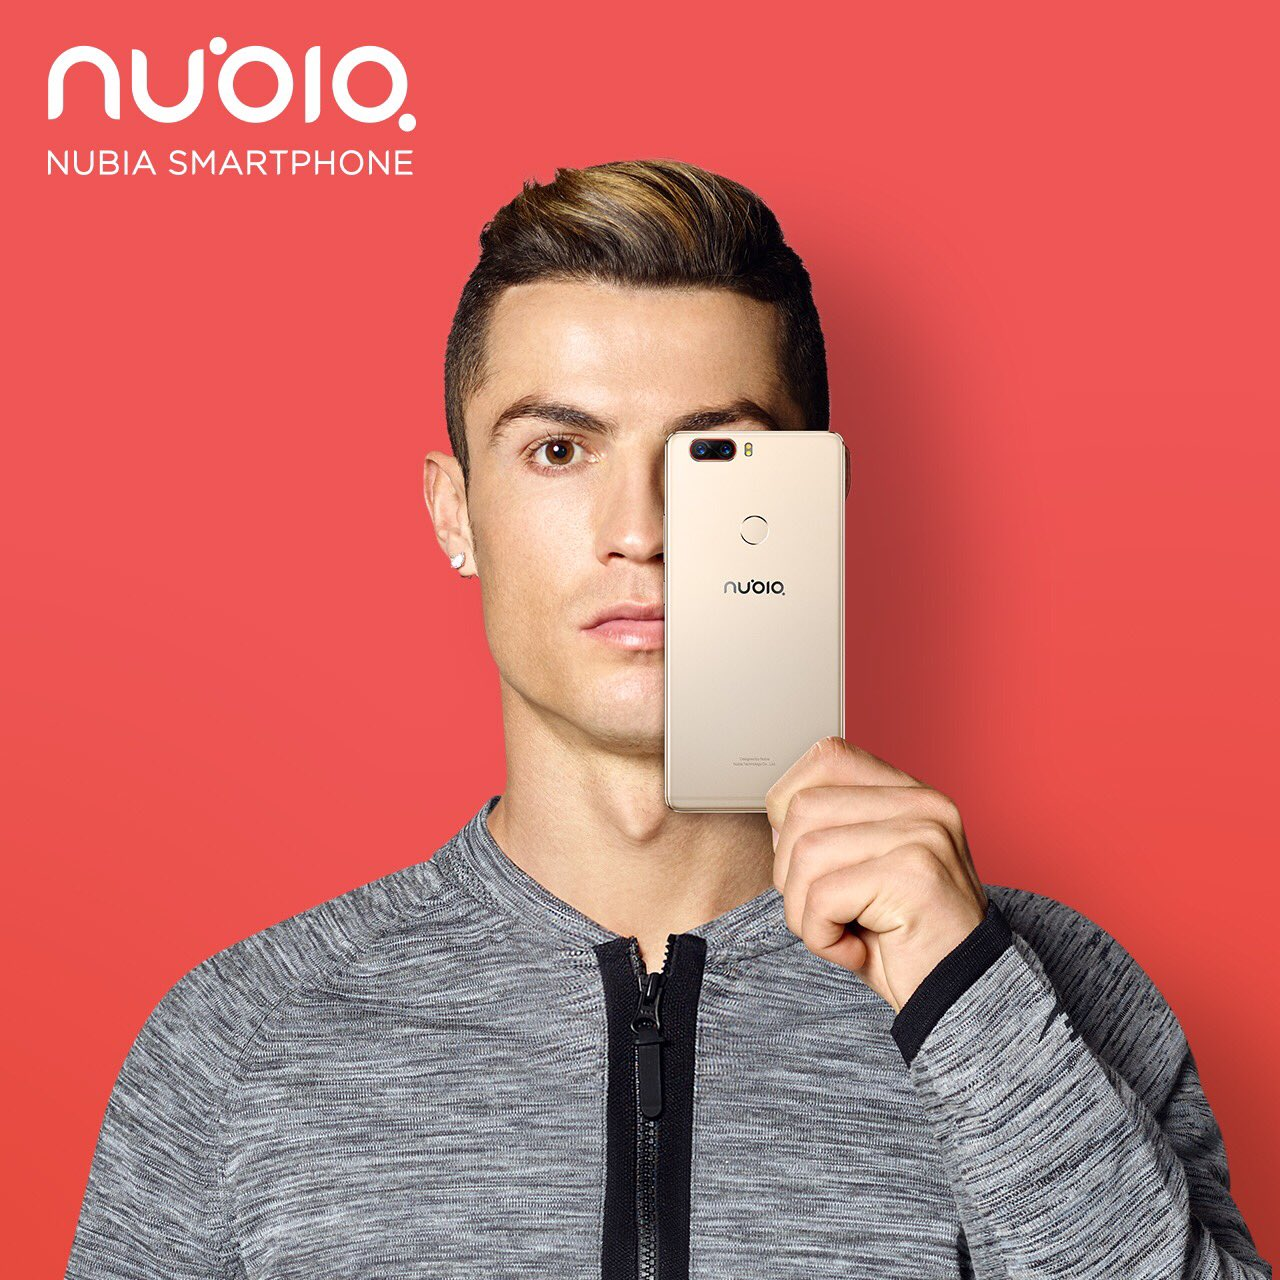 Shoot like a pro with nubia Z17. @nubiasmartphone https://t.co/1xmnnl5hdo